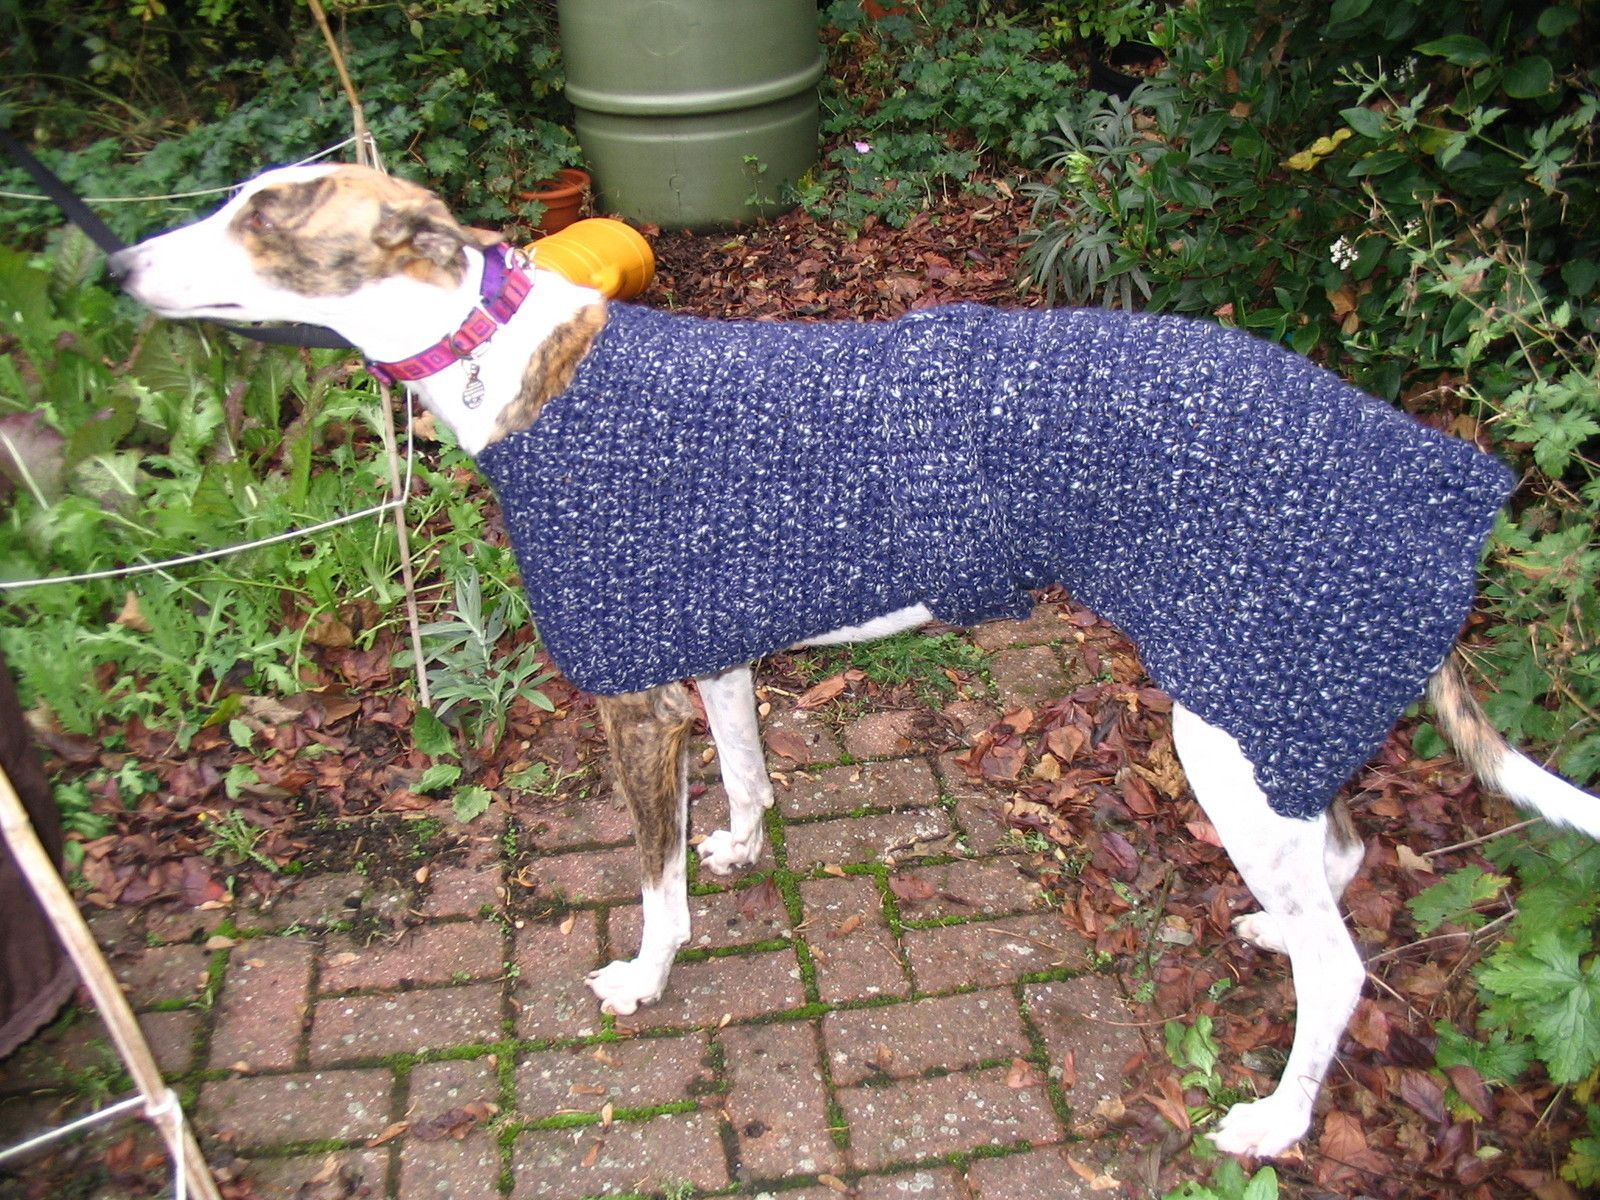 Crocheted Greyhound Coat | Knitted dog sweater pattern ...